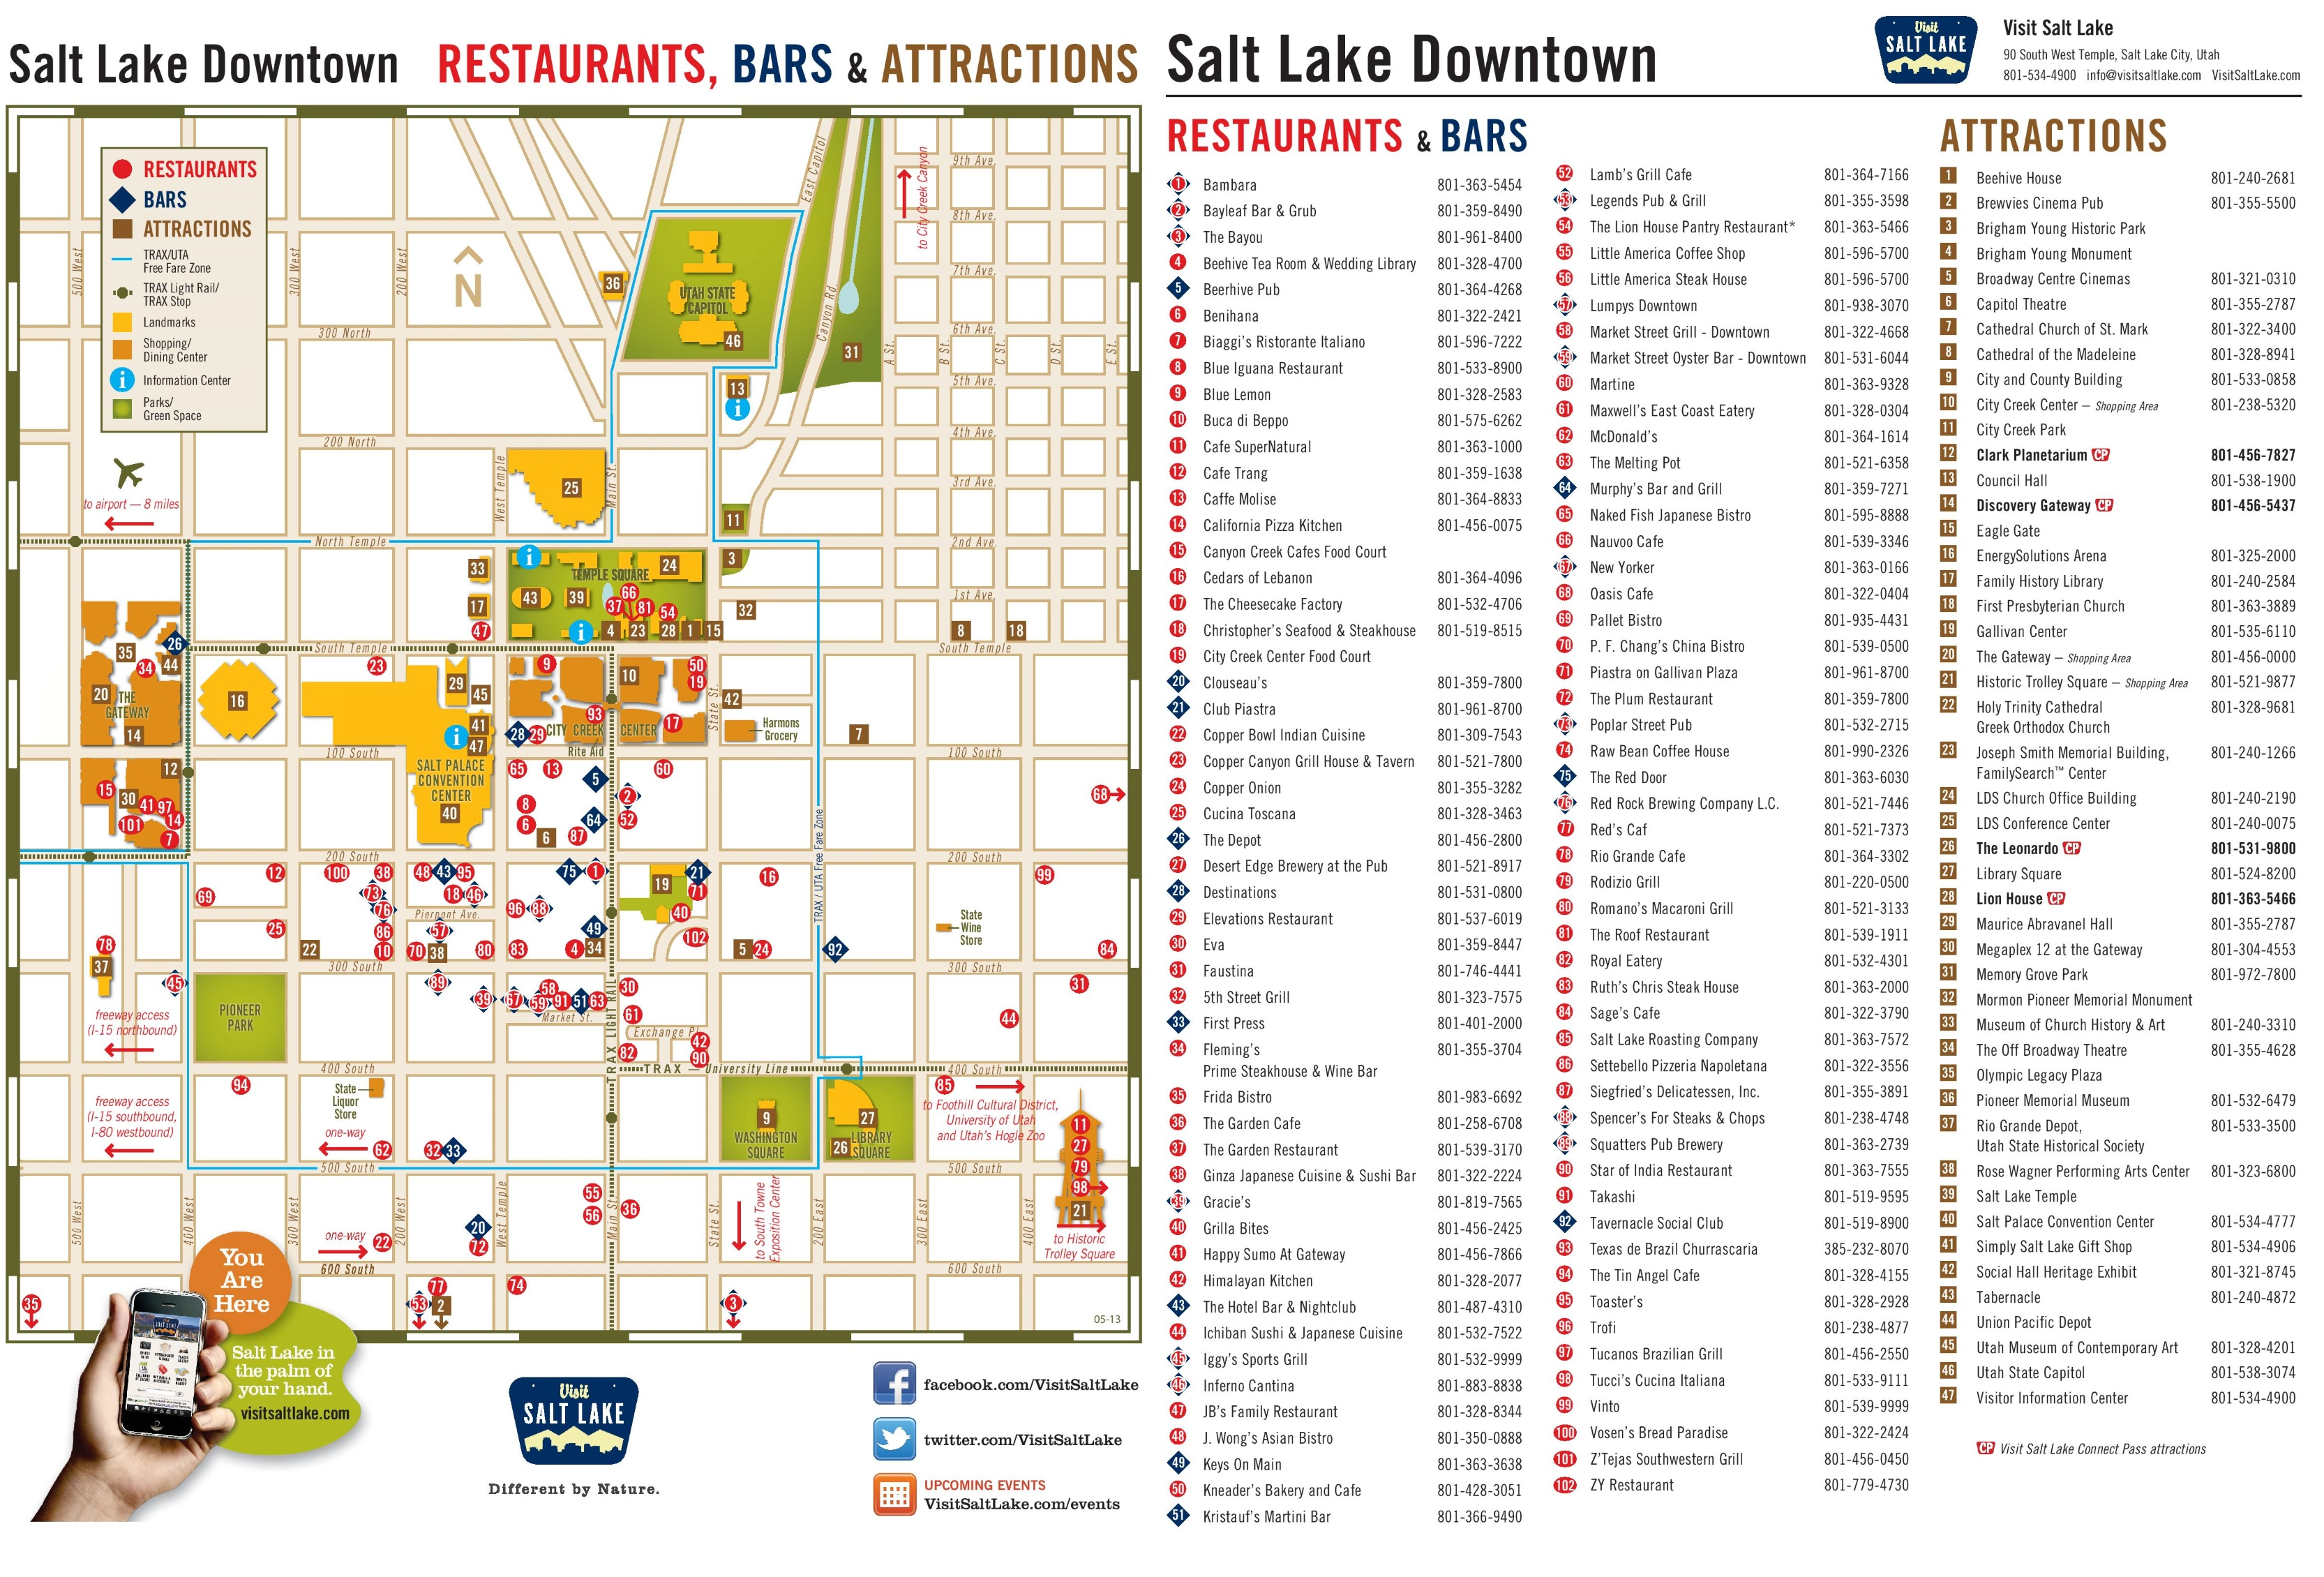 Salt Lake City tourist attractions map – Salt Lake City Tourist Map